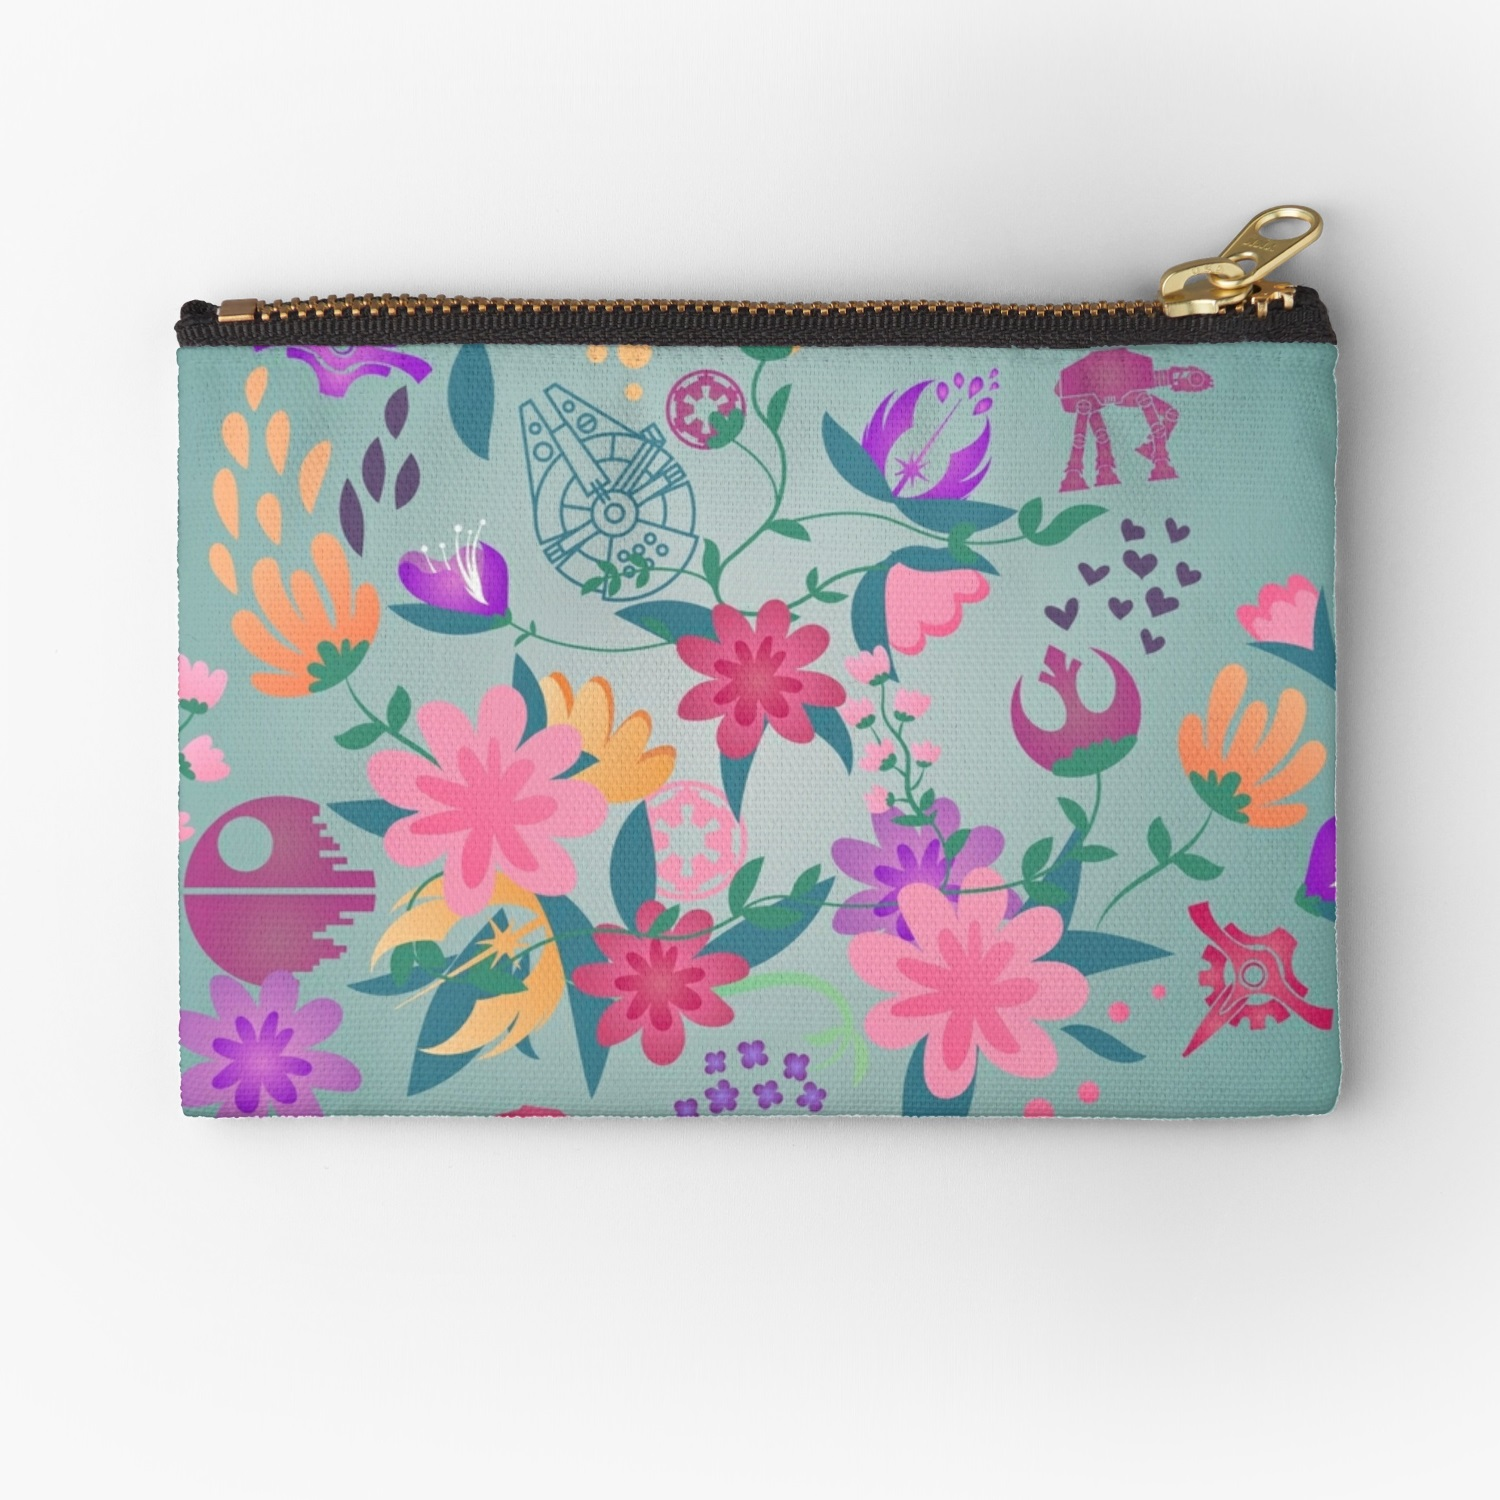 Star Wars Floral Print Zip Up Pouch by Fashions For Fans on RedBubble